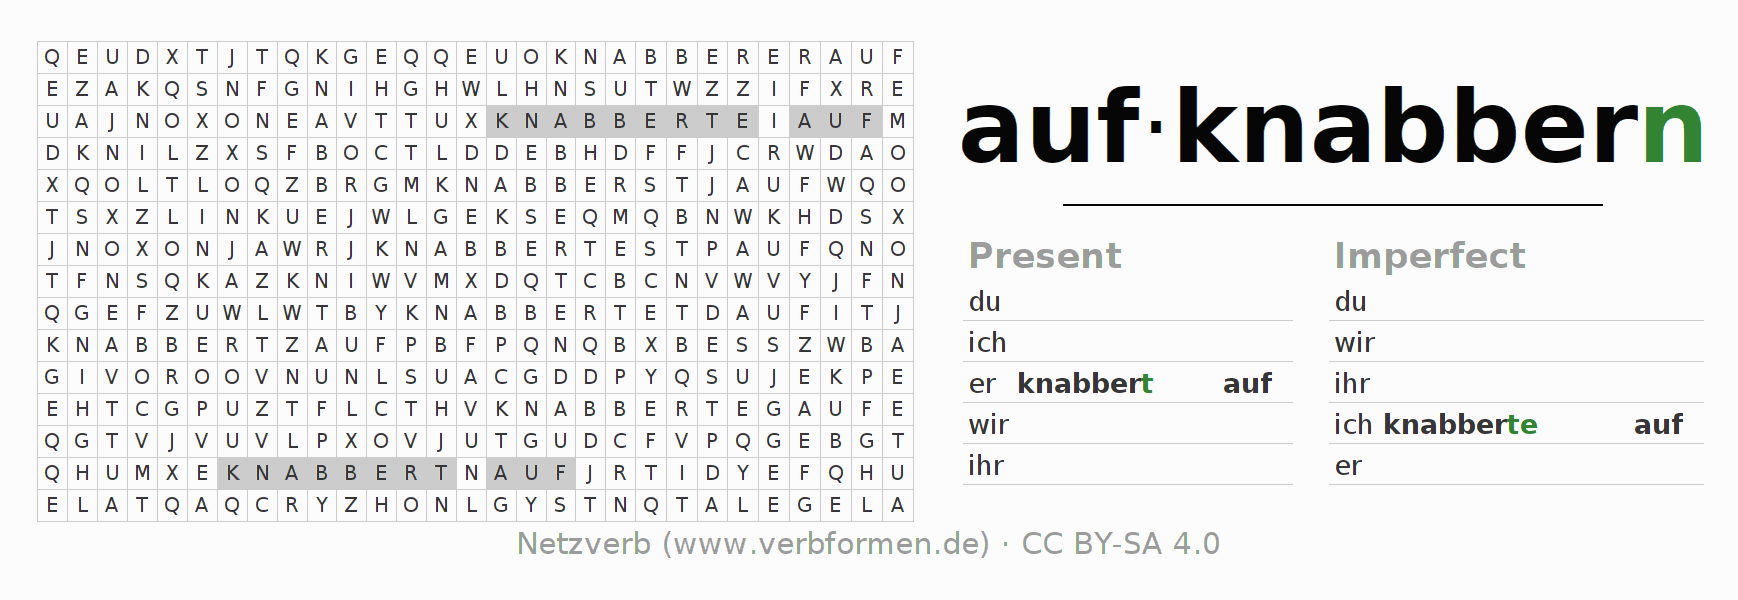 Word search puzzle for the conjugation of the verb aufknabbern